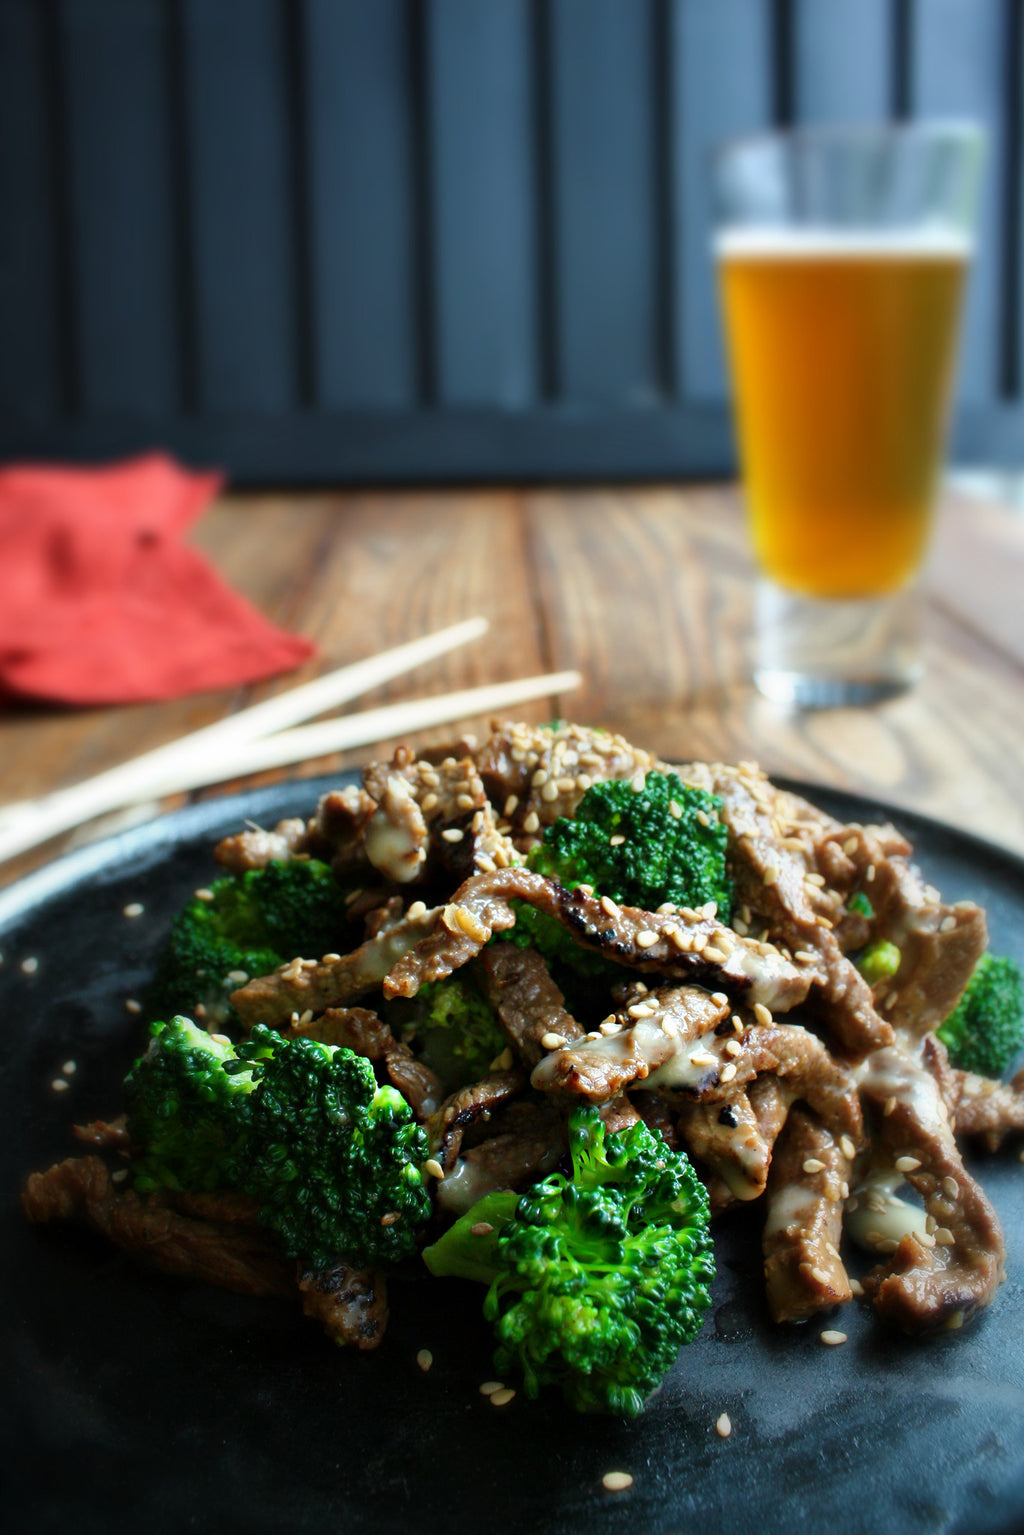 Japanese Sesame Beef and Broccoli | Wozz! Kitchen Creations